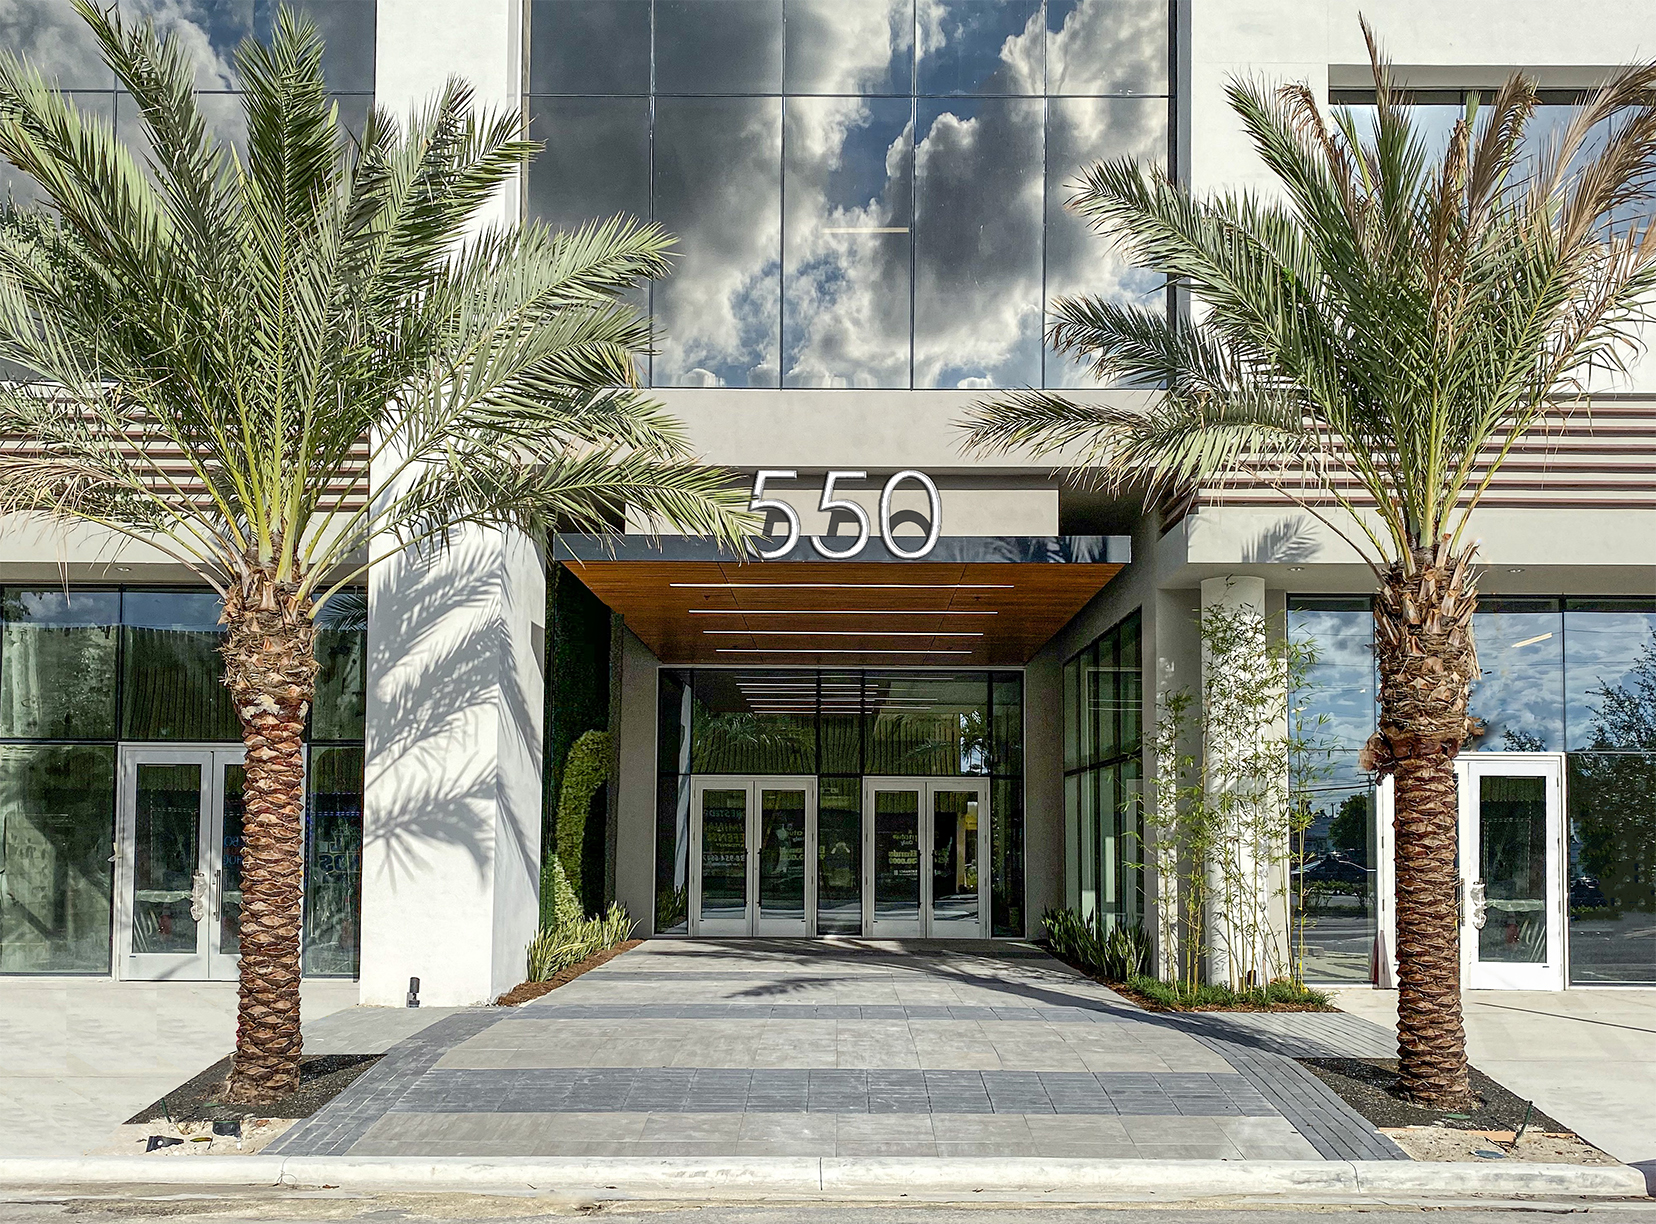 Berger Commercial Realty Brokers Five-Year Lease Deal With Bank OZK; 550 Building In Downtown Fort Lauderdale Provides Ideal Location  And High Parking Ratio